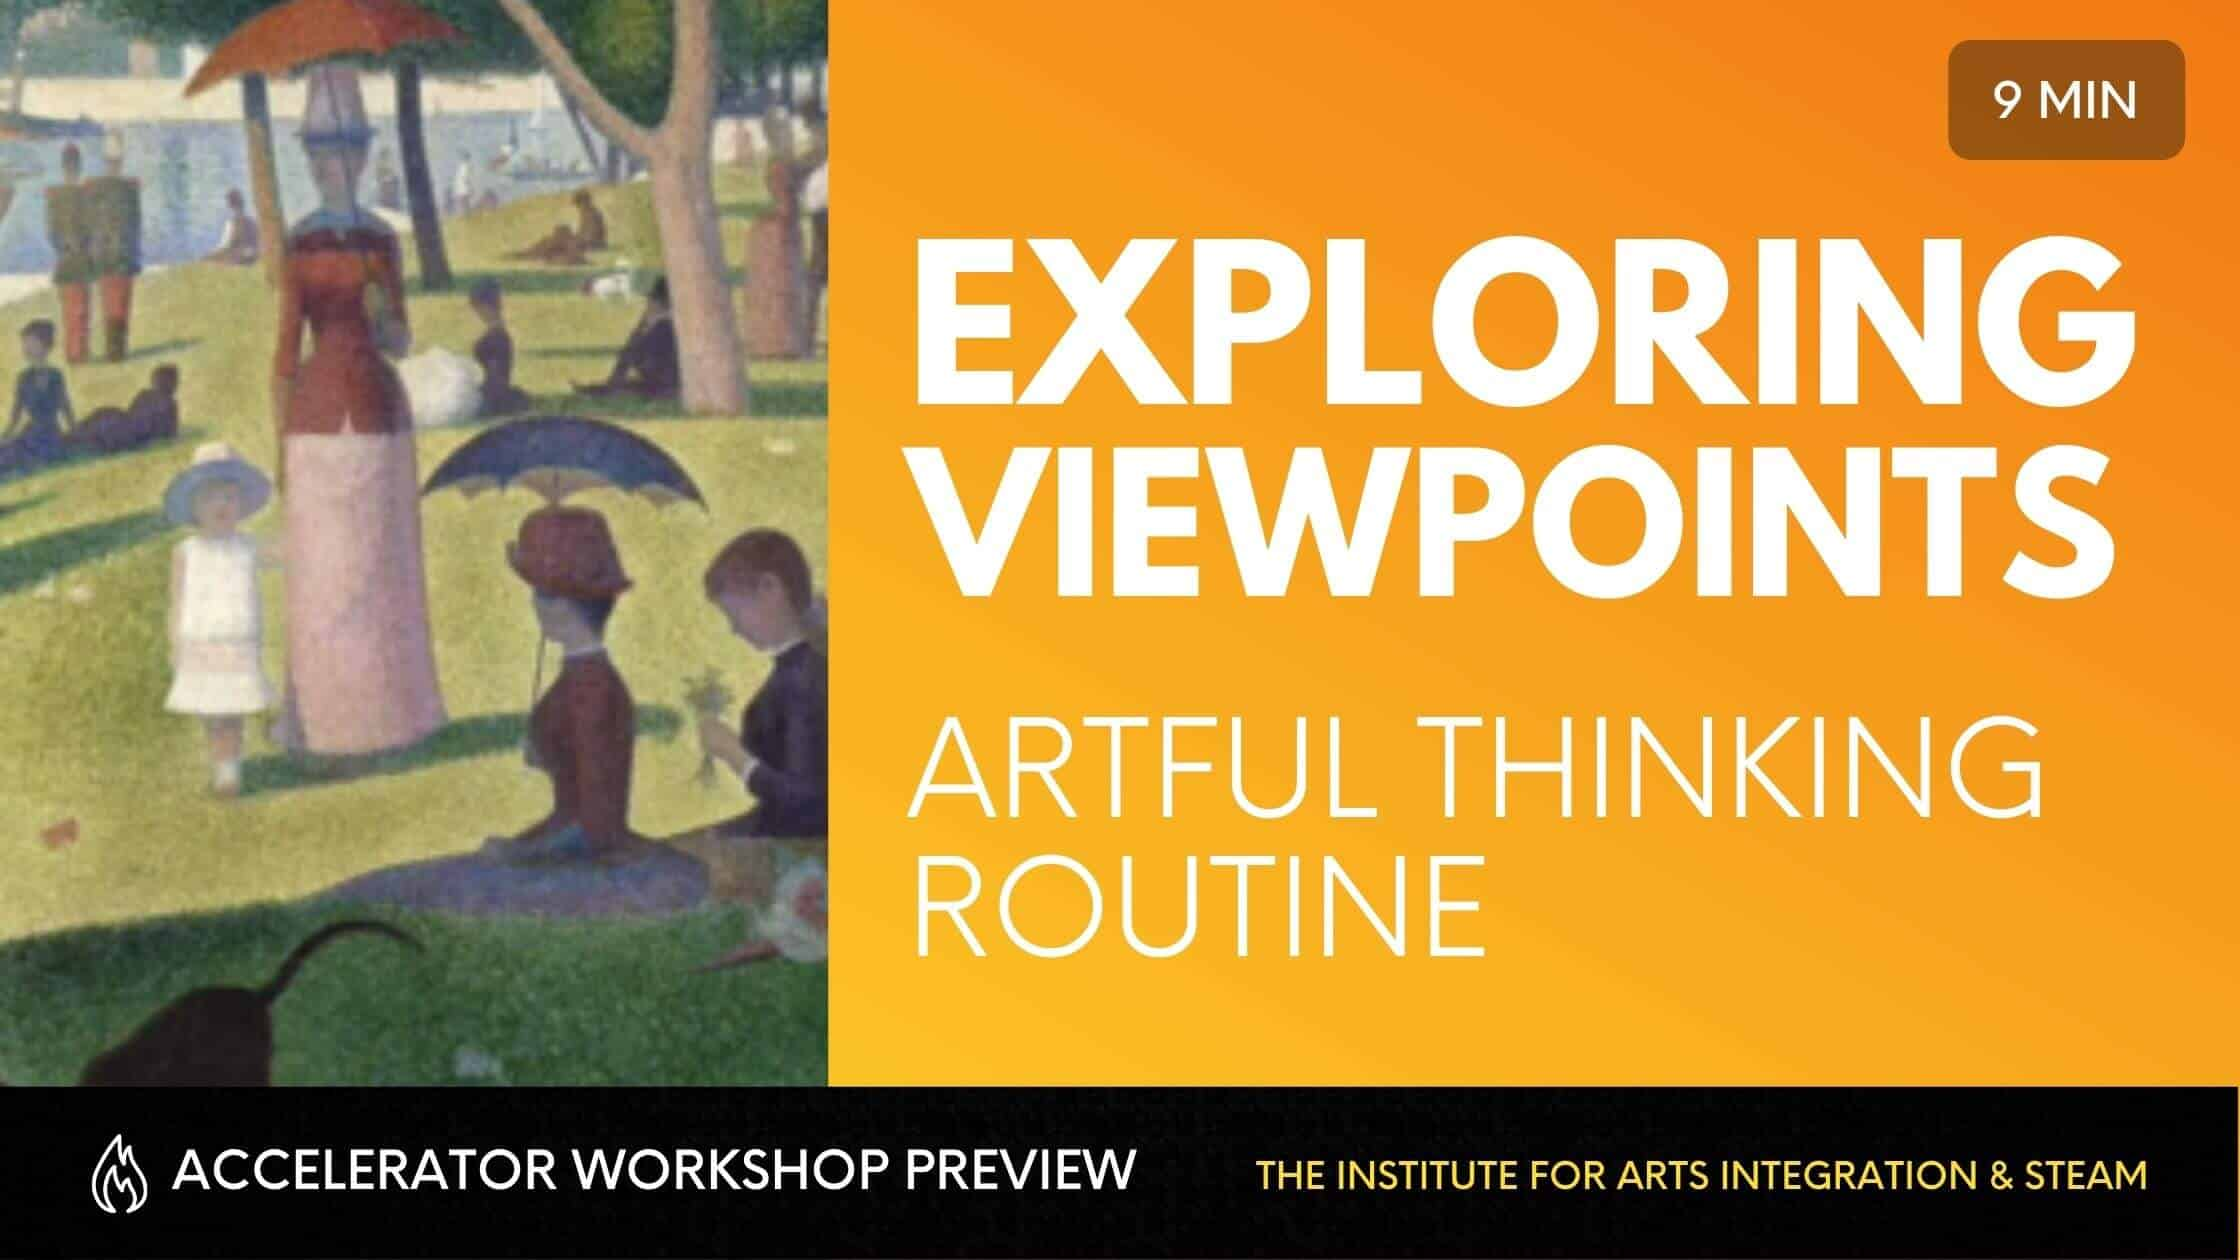 EXPLORING VIEWPOINTS ARTFUL THINKING ROUTINE